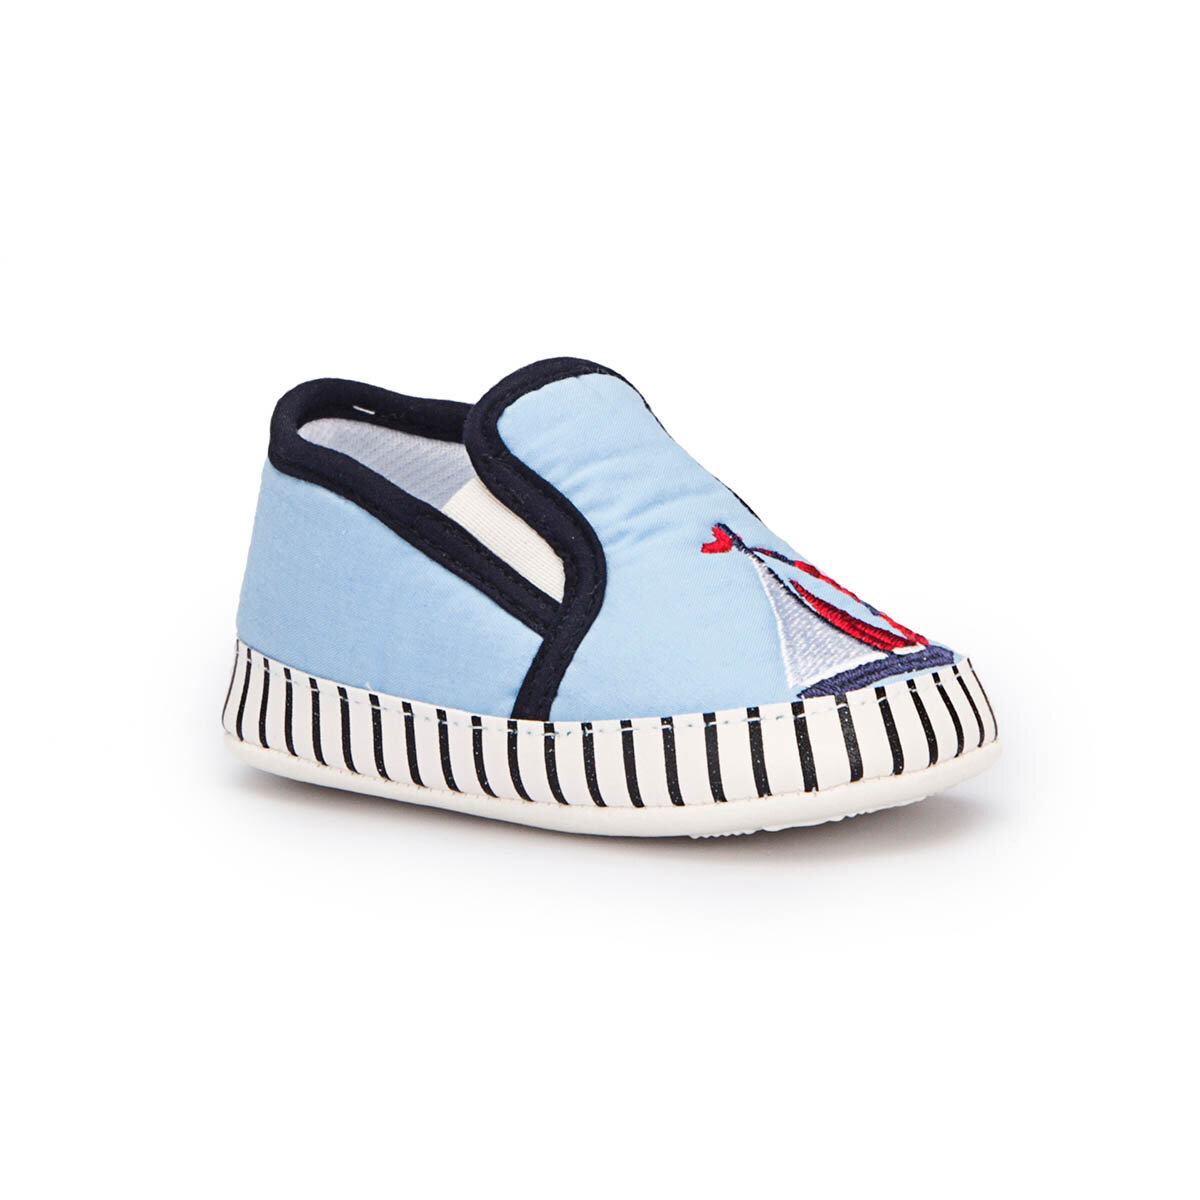 FLO ZIGGY-8 Blue Male Child Slippers SPYMAN